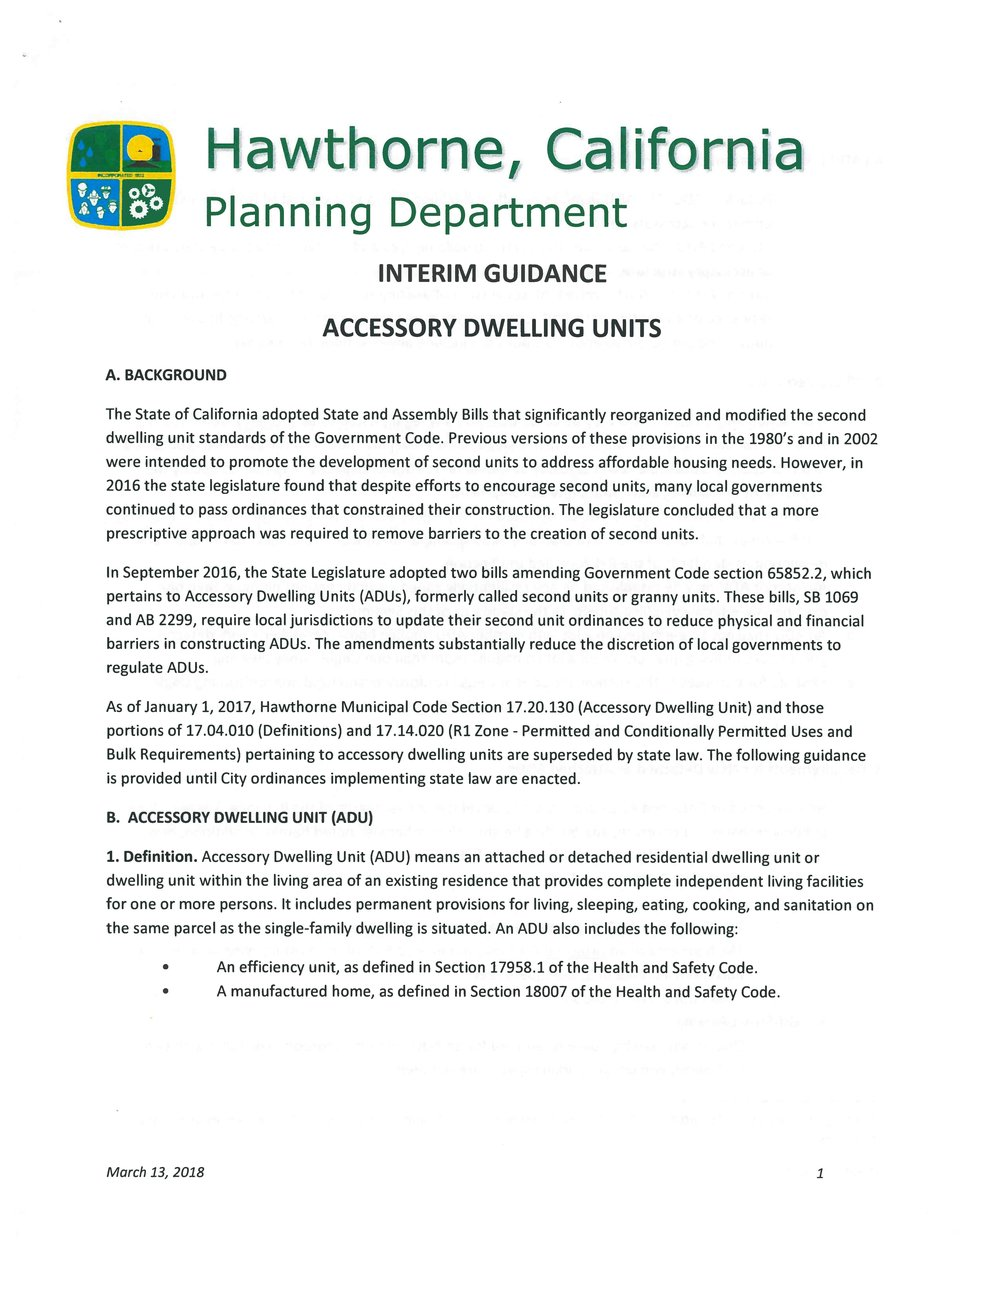 Click on the above Interim Guidance Acessory Dwelling Units page to view the complete document